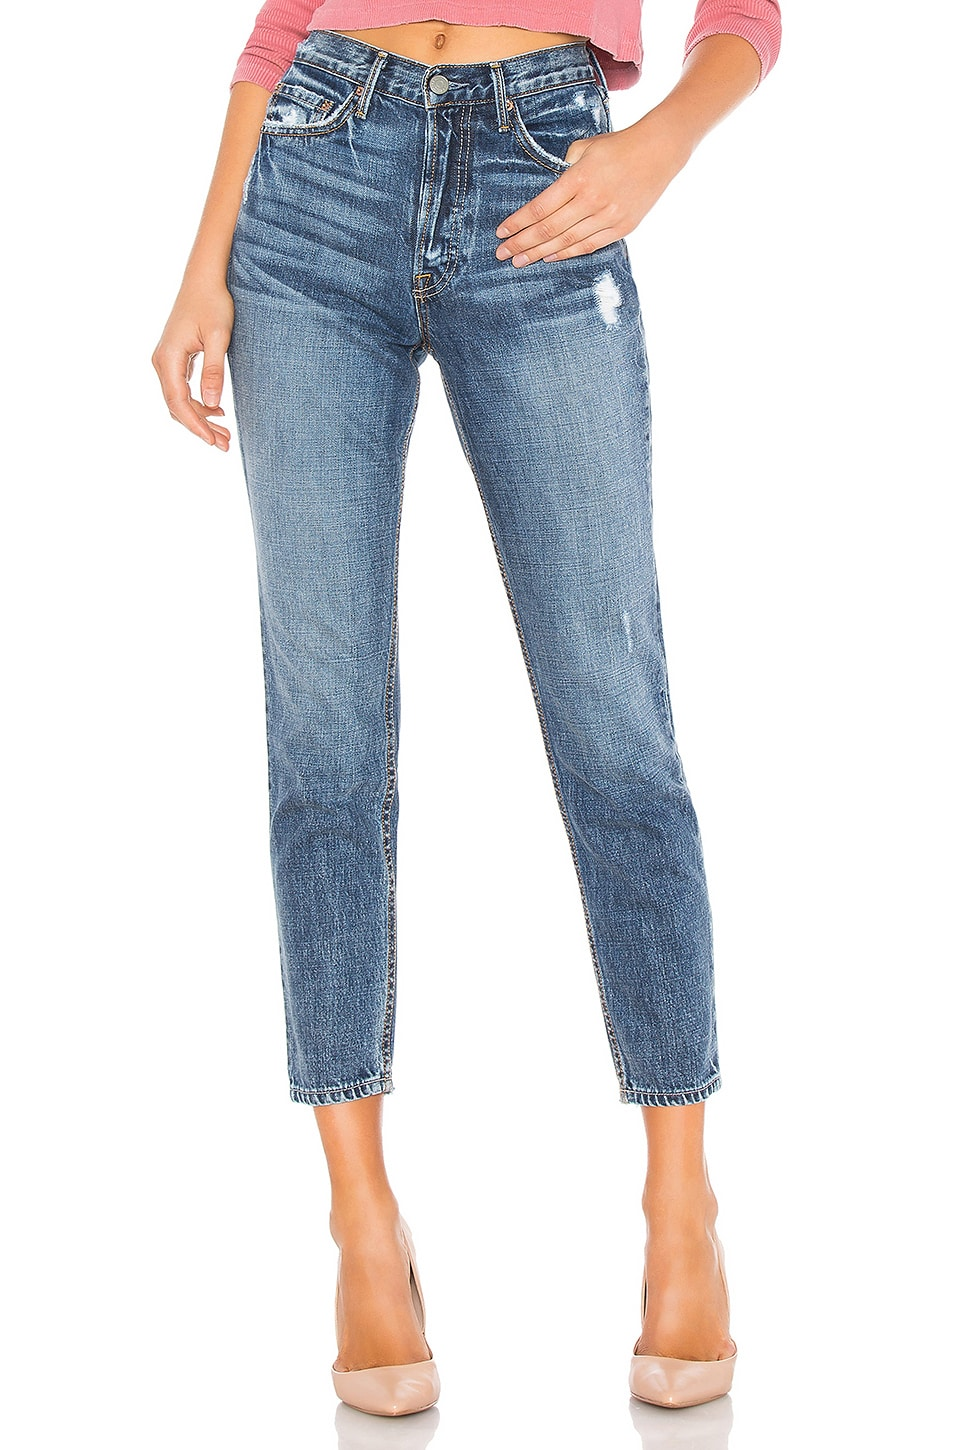 GRLFRND Karolina High-Rise Skinny Jean in Told You So